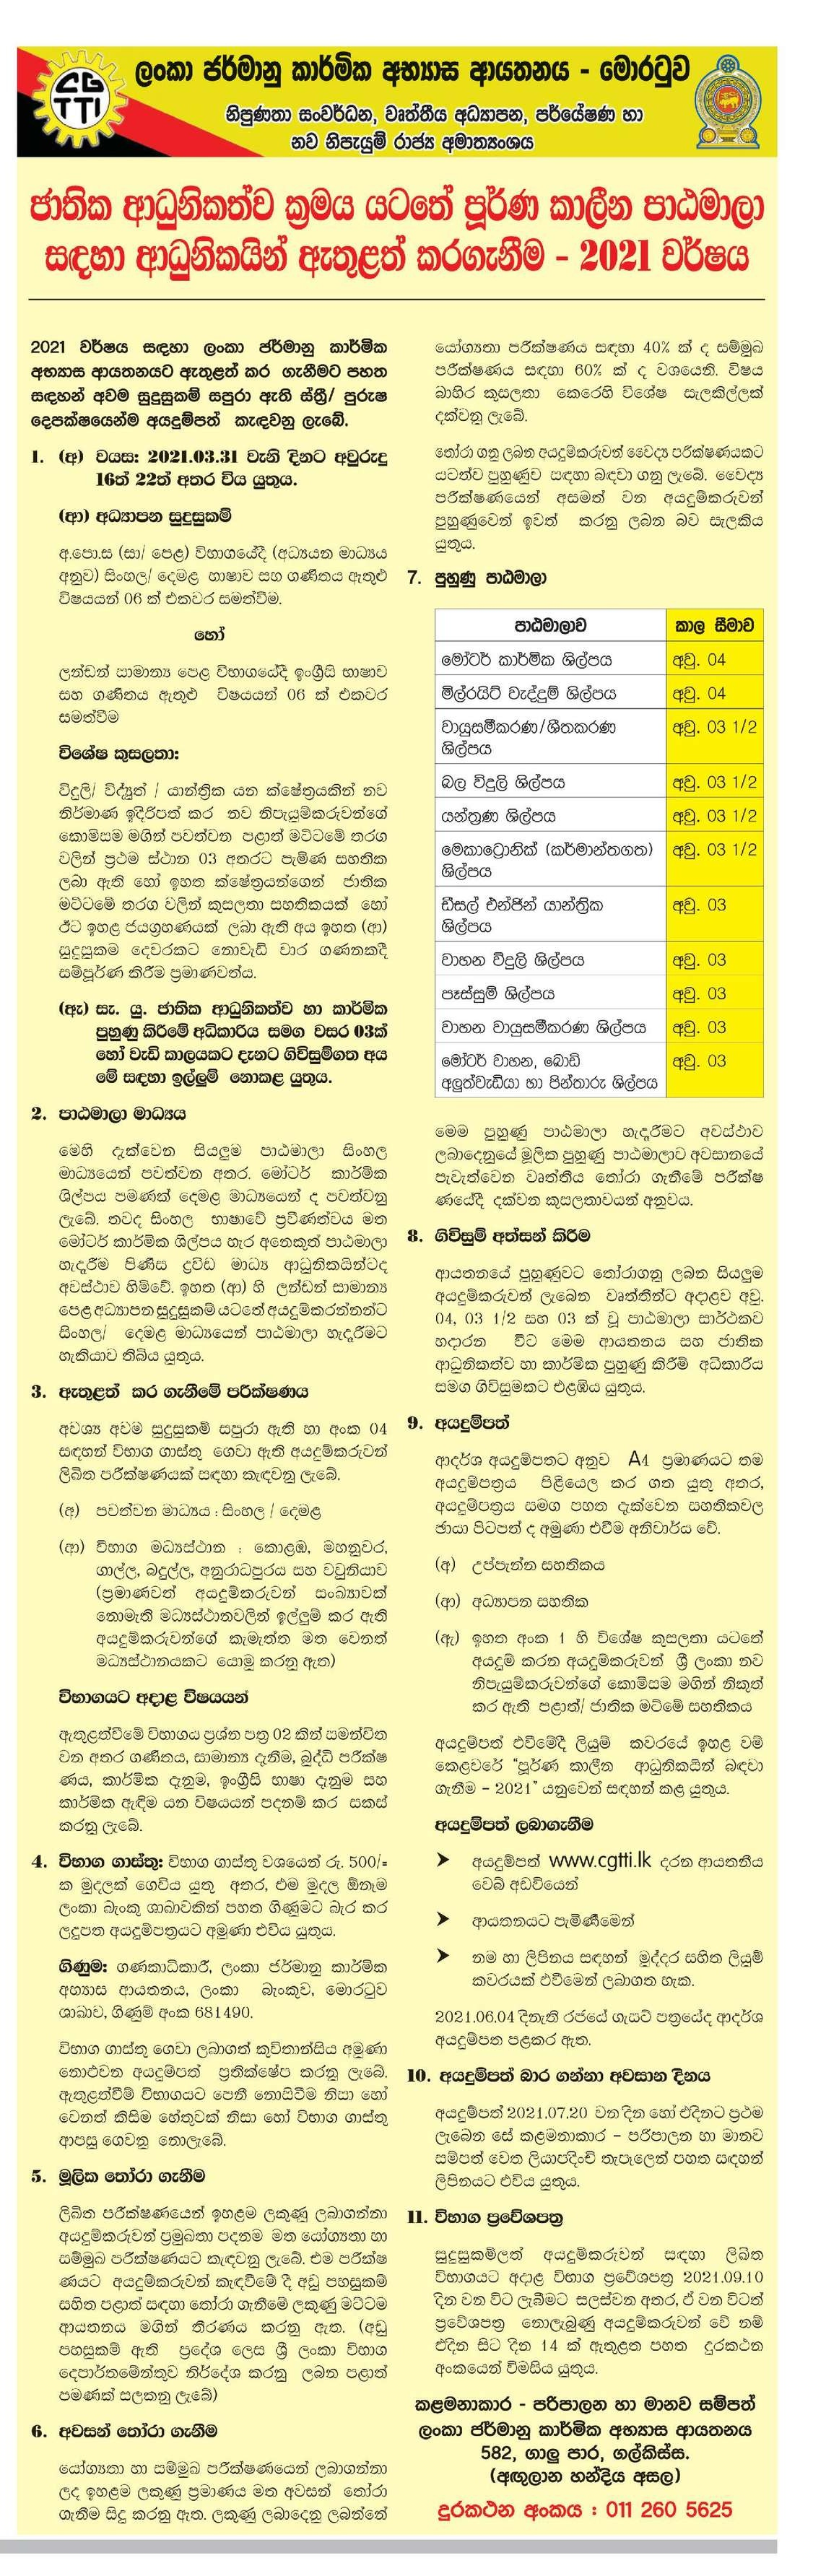 Enrollment of Apprentices for Full Time Courses under the National Apprenticeship Scheme - 2021